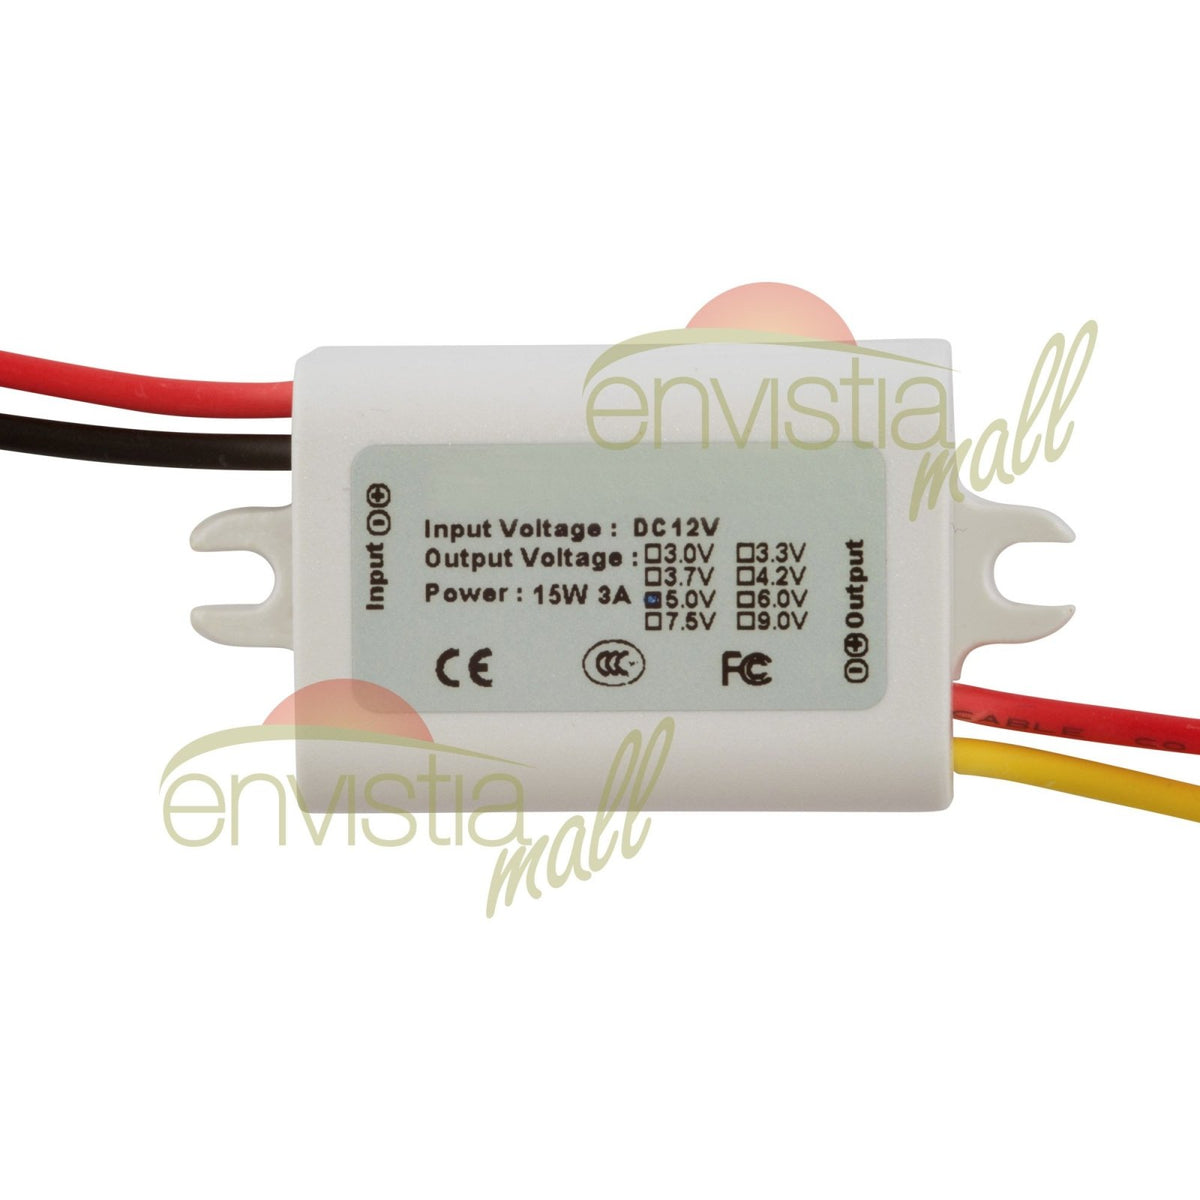 Waterproof DC-DC Converter 12V Step Down to 5V USB Power Supply Module 3A 15W@US